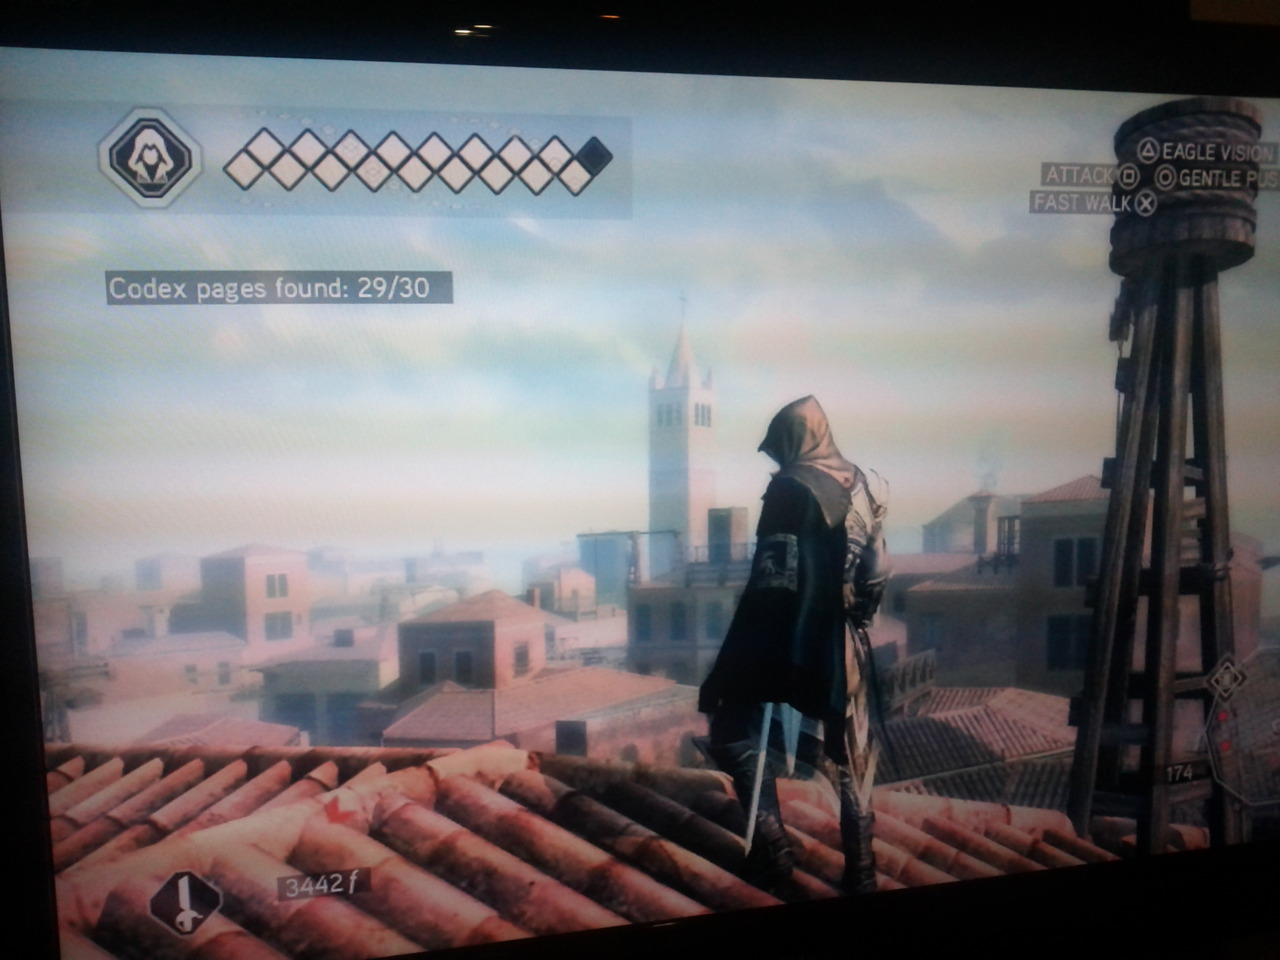 With 29 of 30 codex pages found, the solitary assassin paused for a moment to ponder the quiet majesty of the evening haze settling across the rooftops of Venice.    In a related story, I didn't get any work done tonight.